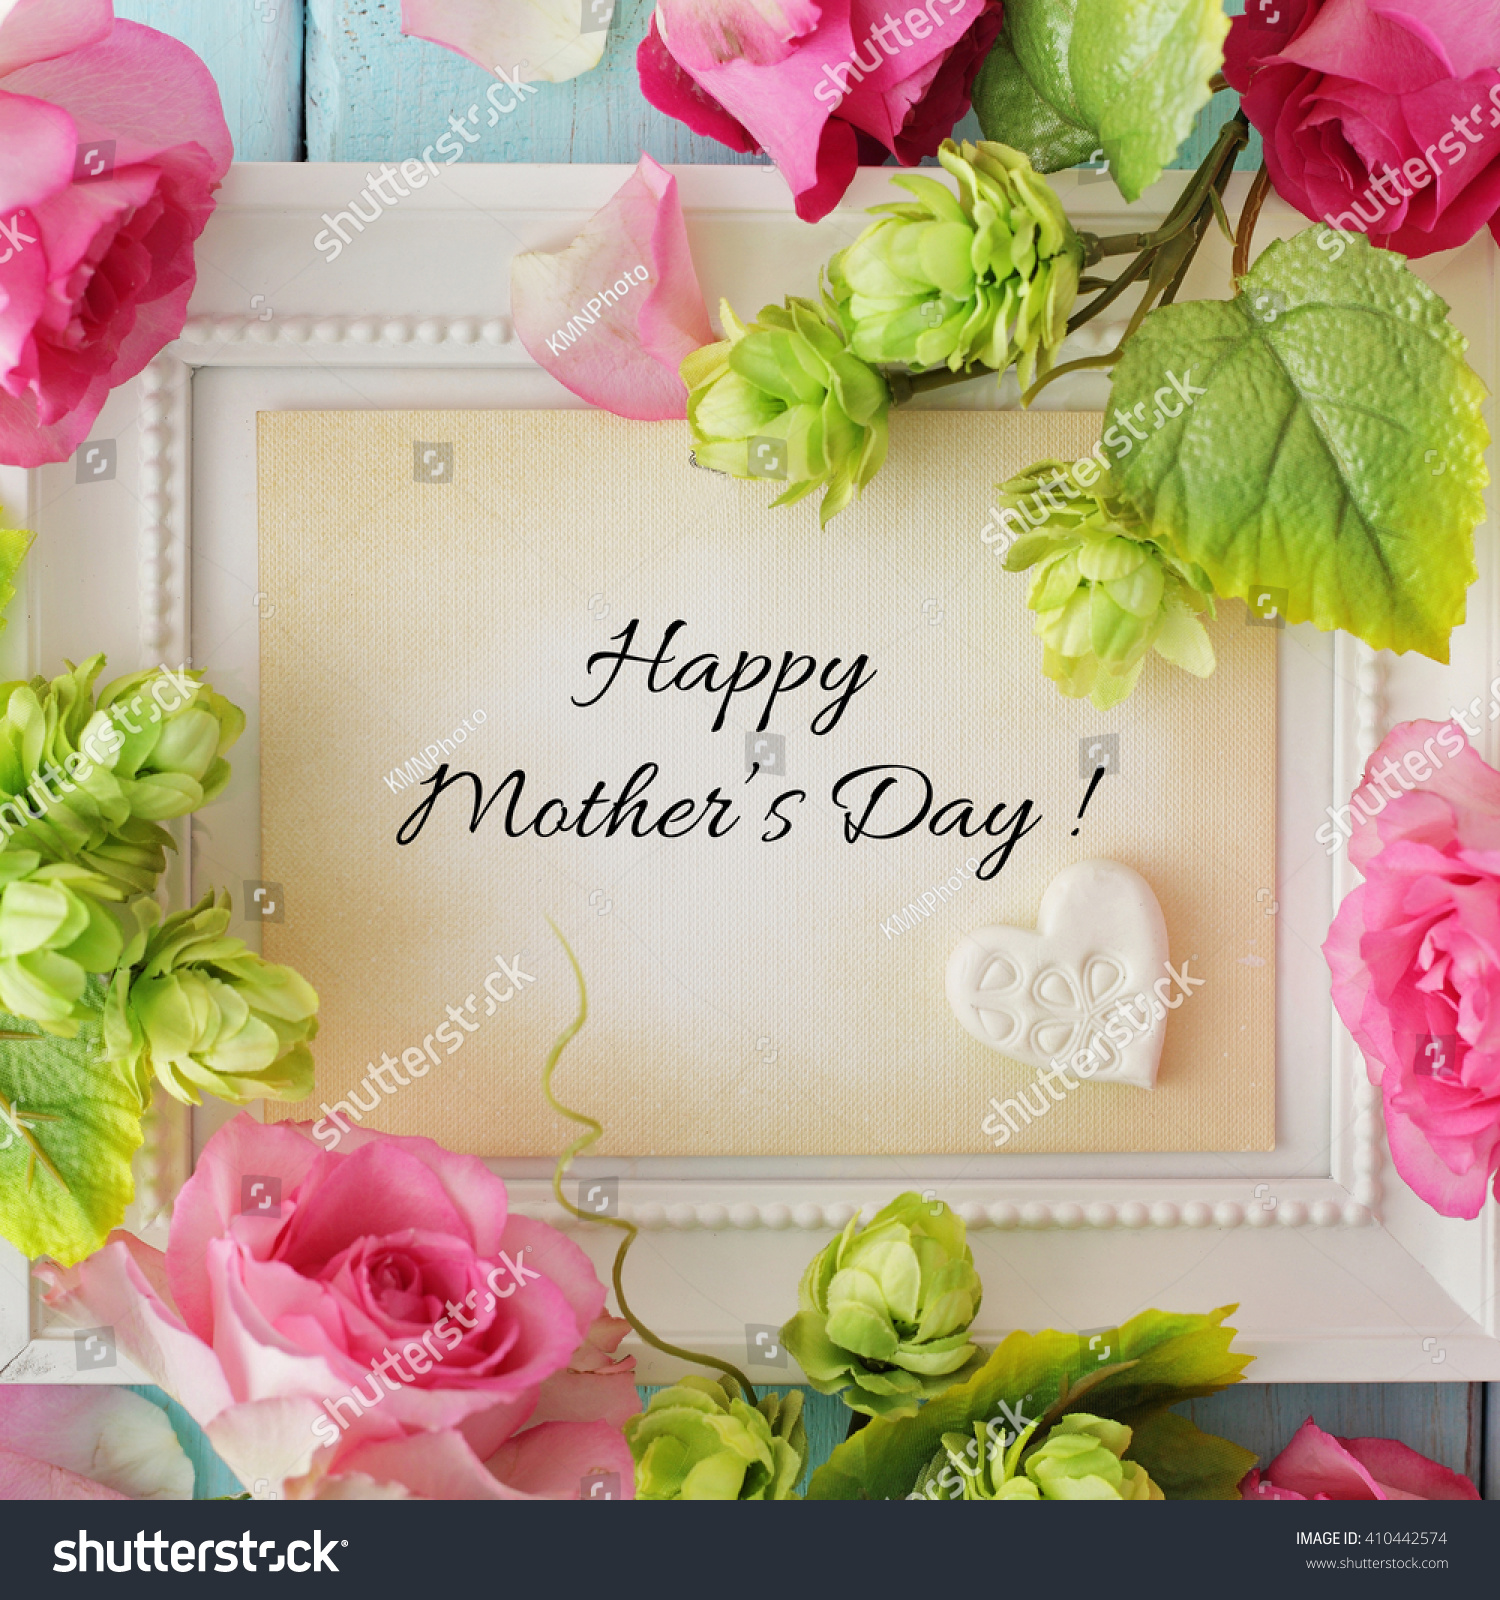 Happy Mothers Day Frame Background Stock Photo (100% Legal ...